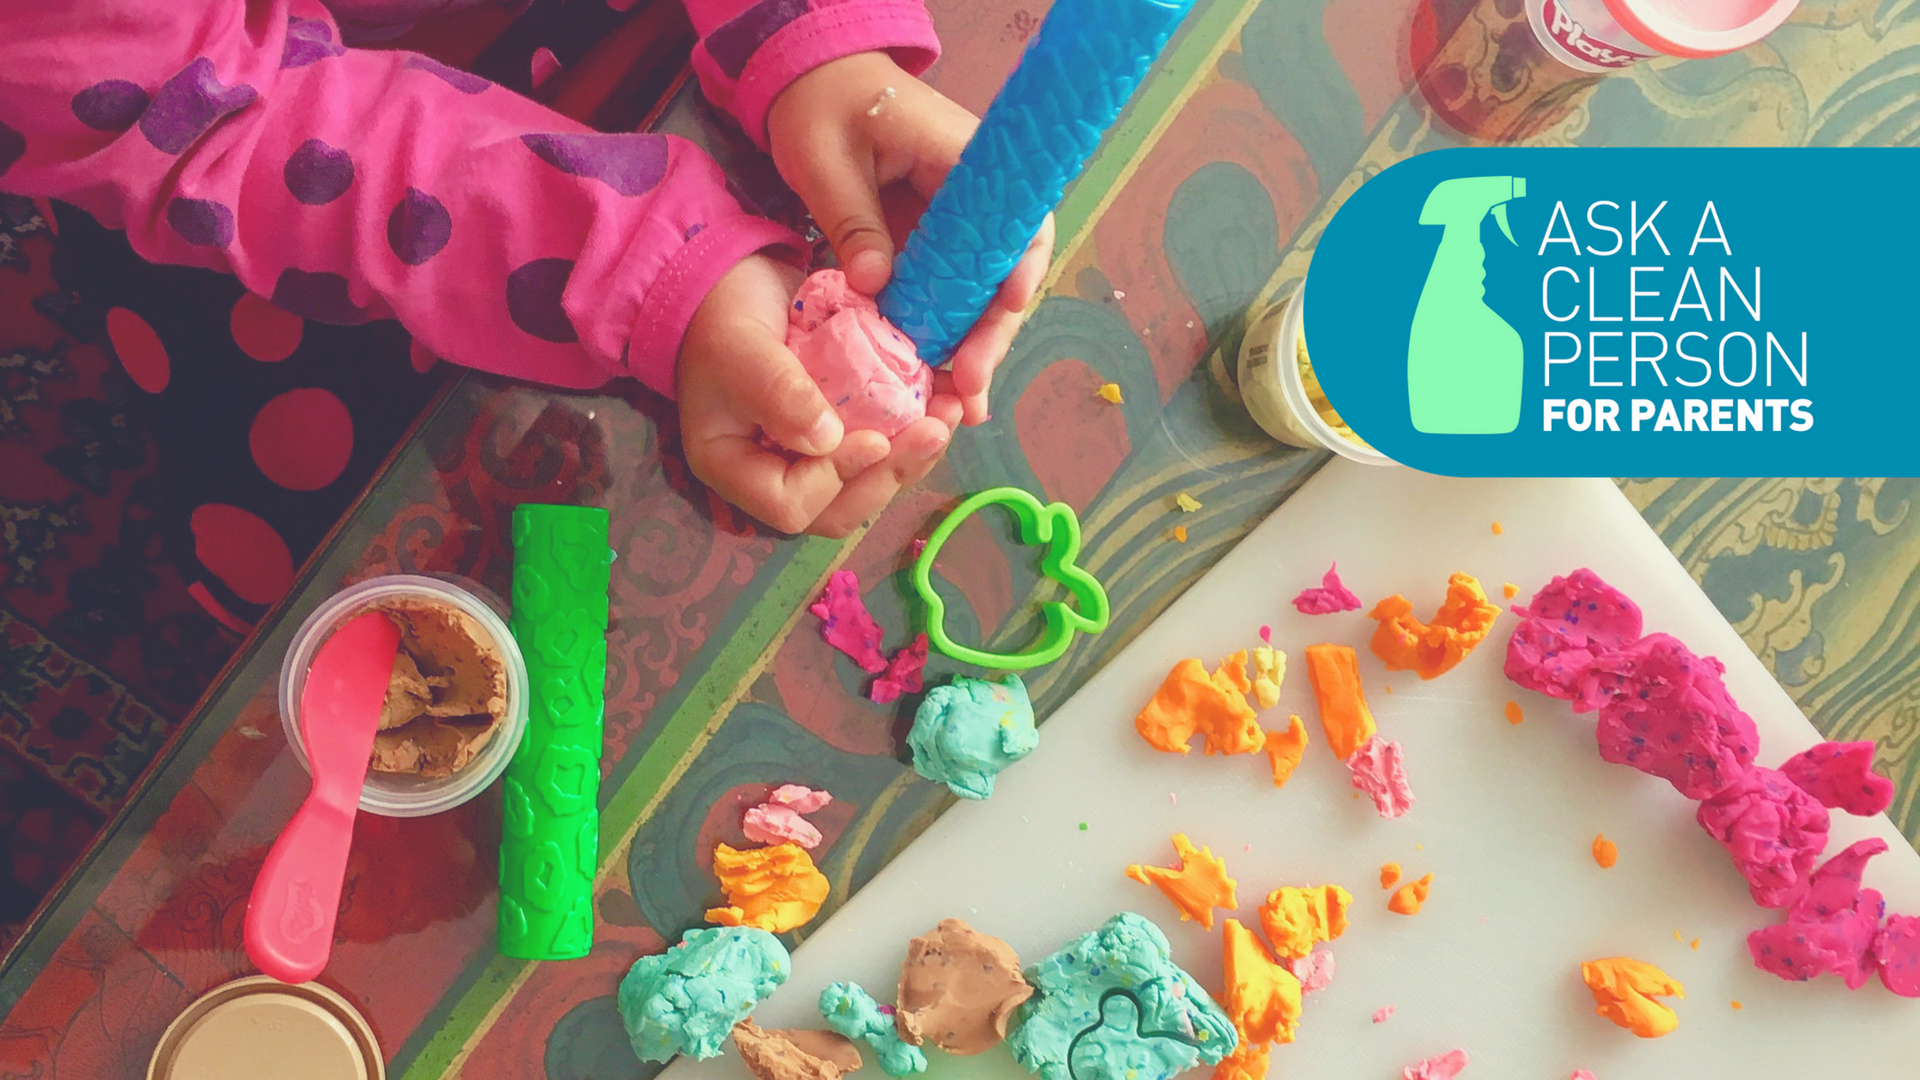 What To Do When Play-Doh Goes Through The Wash